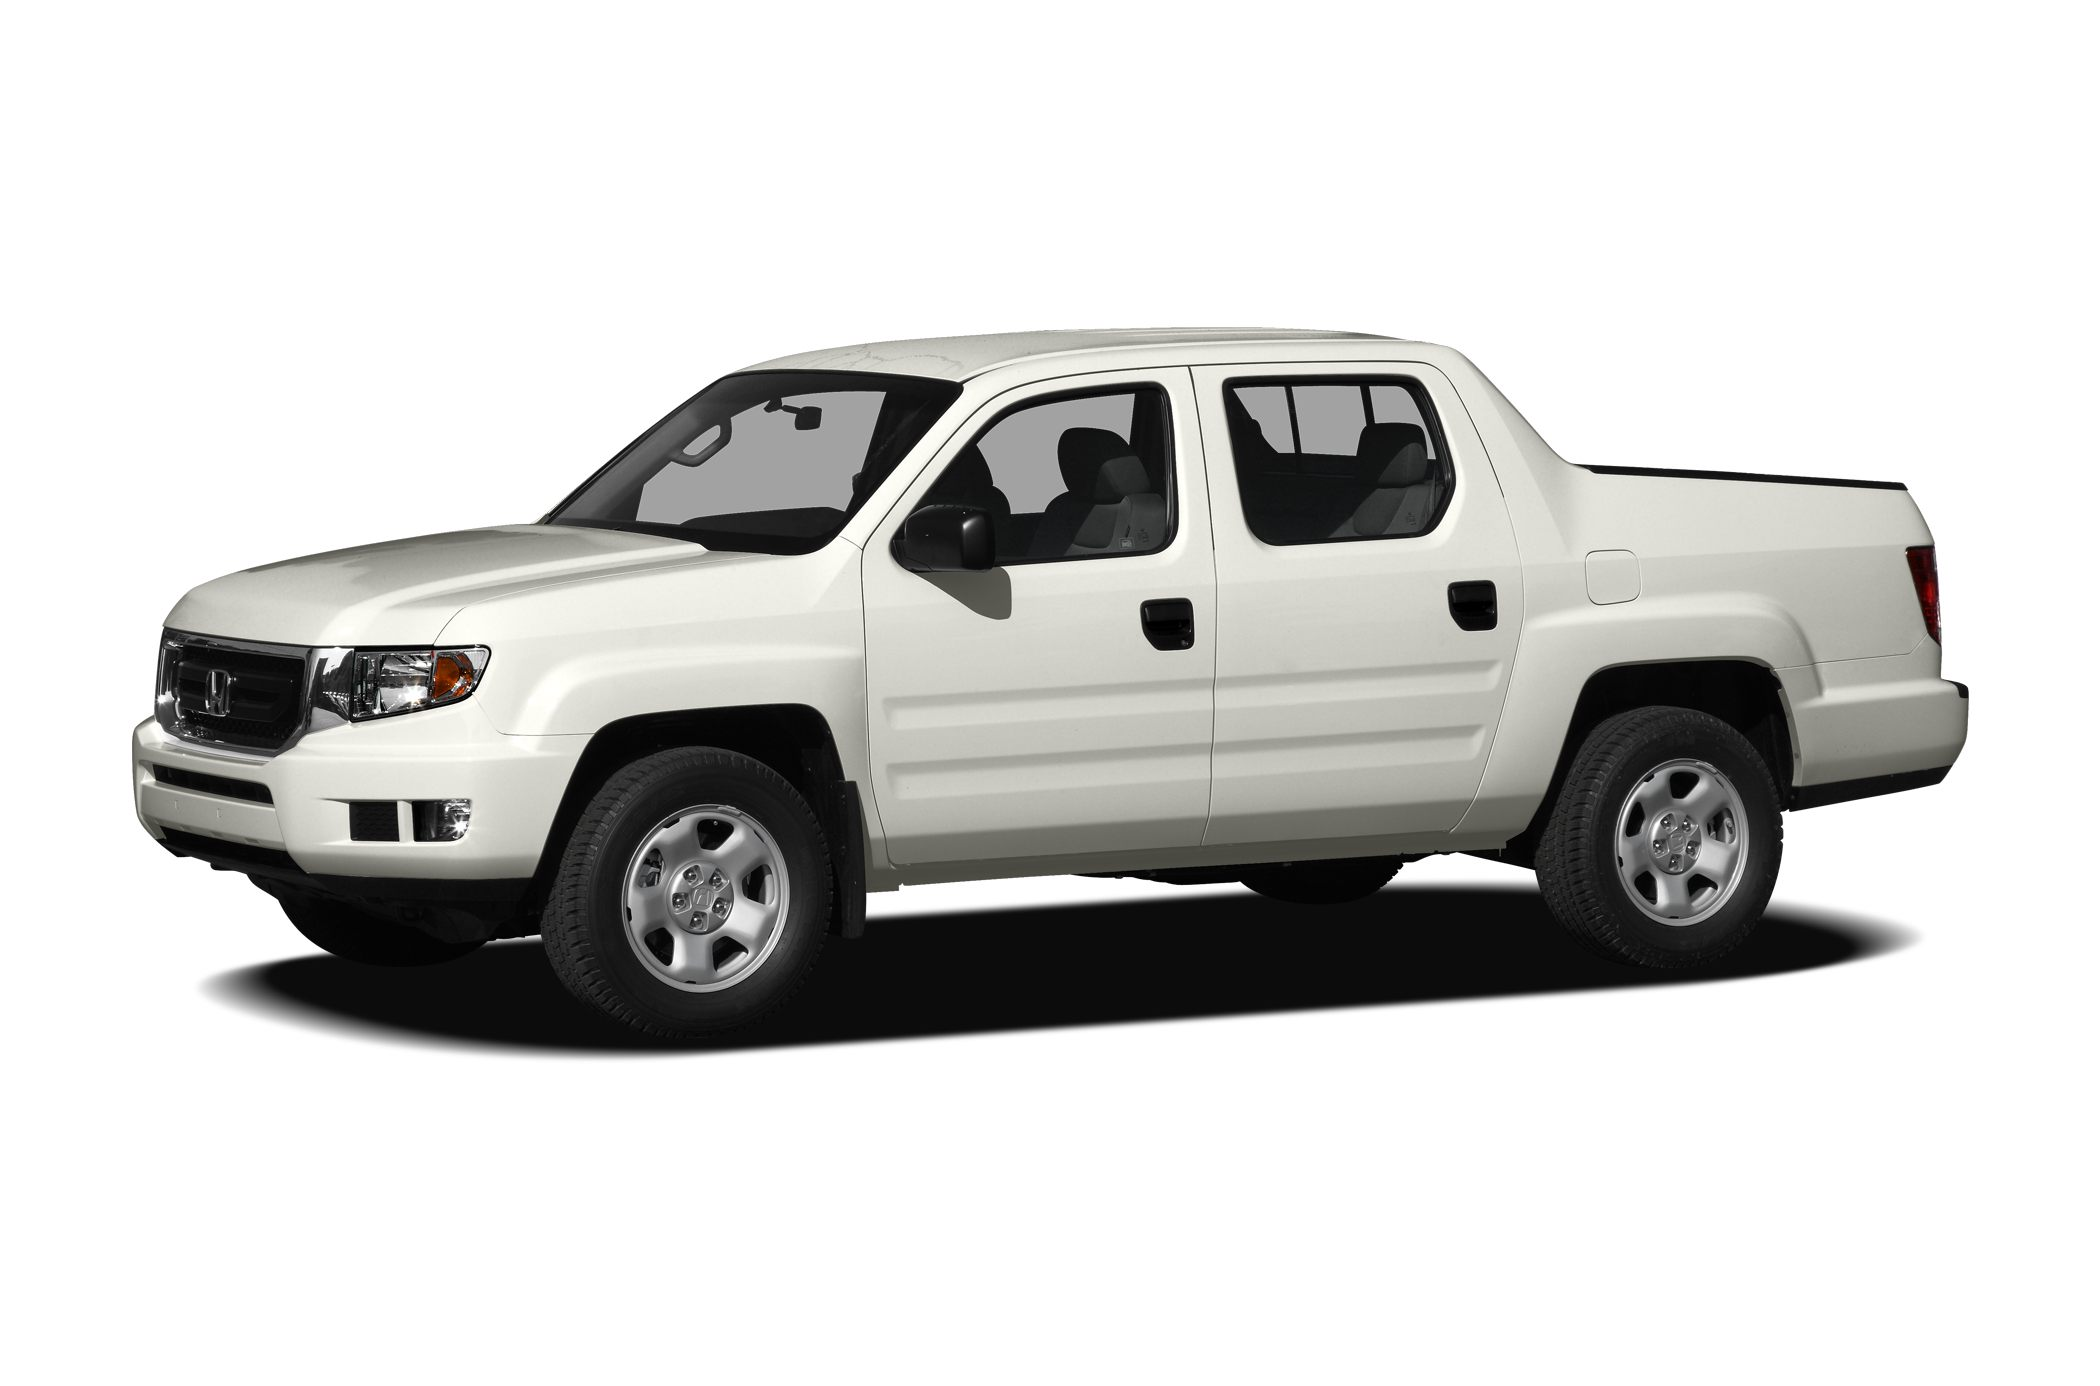 2010 Honda Ridgeline